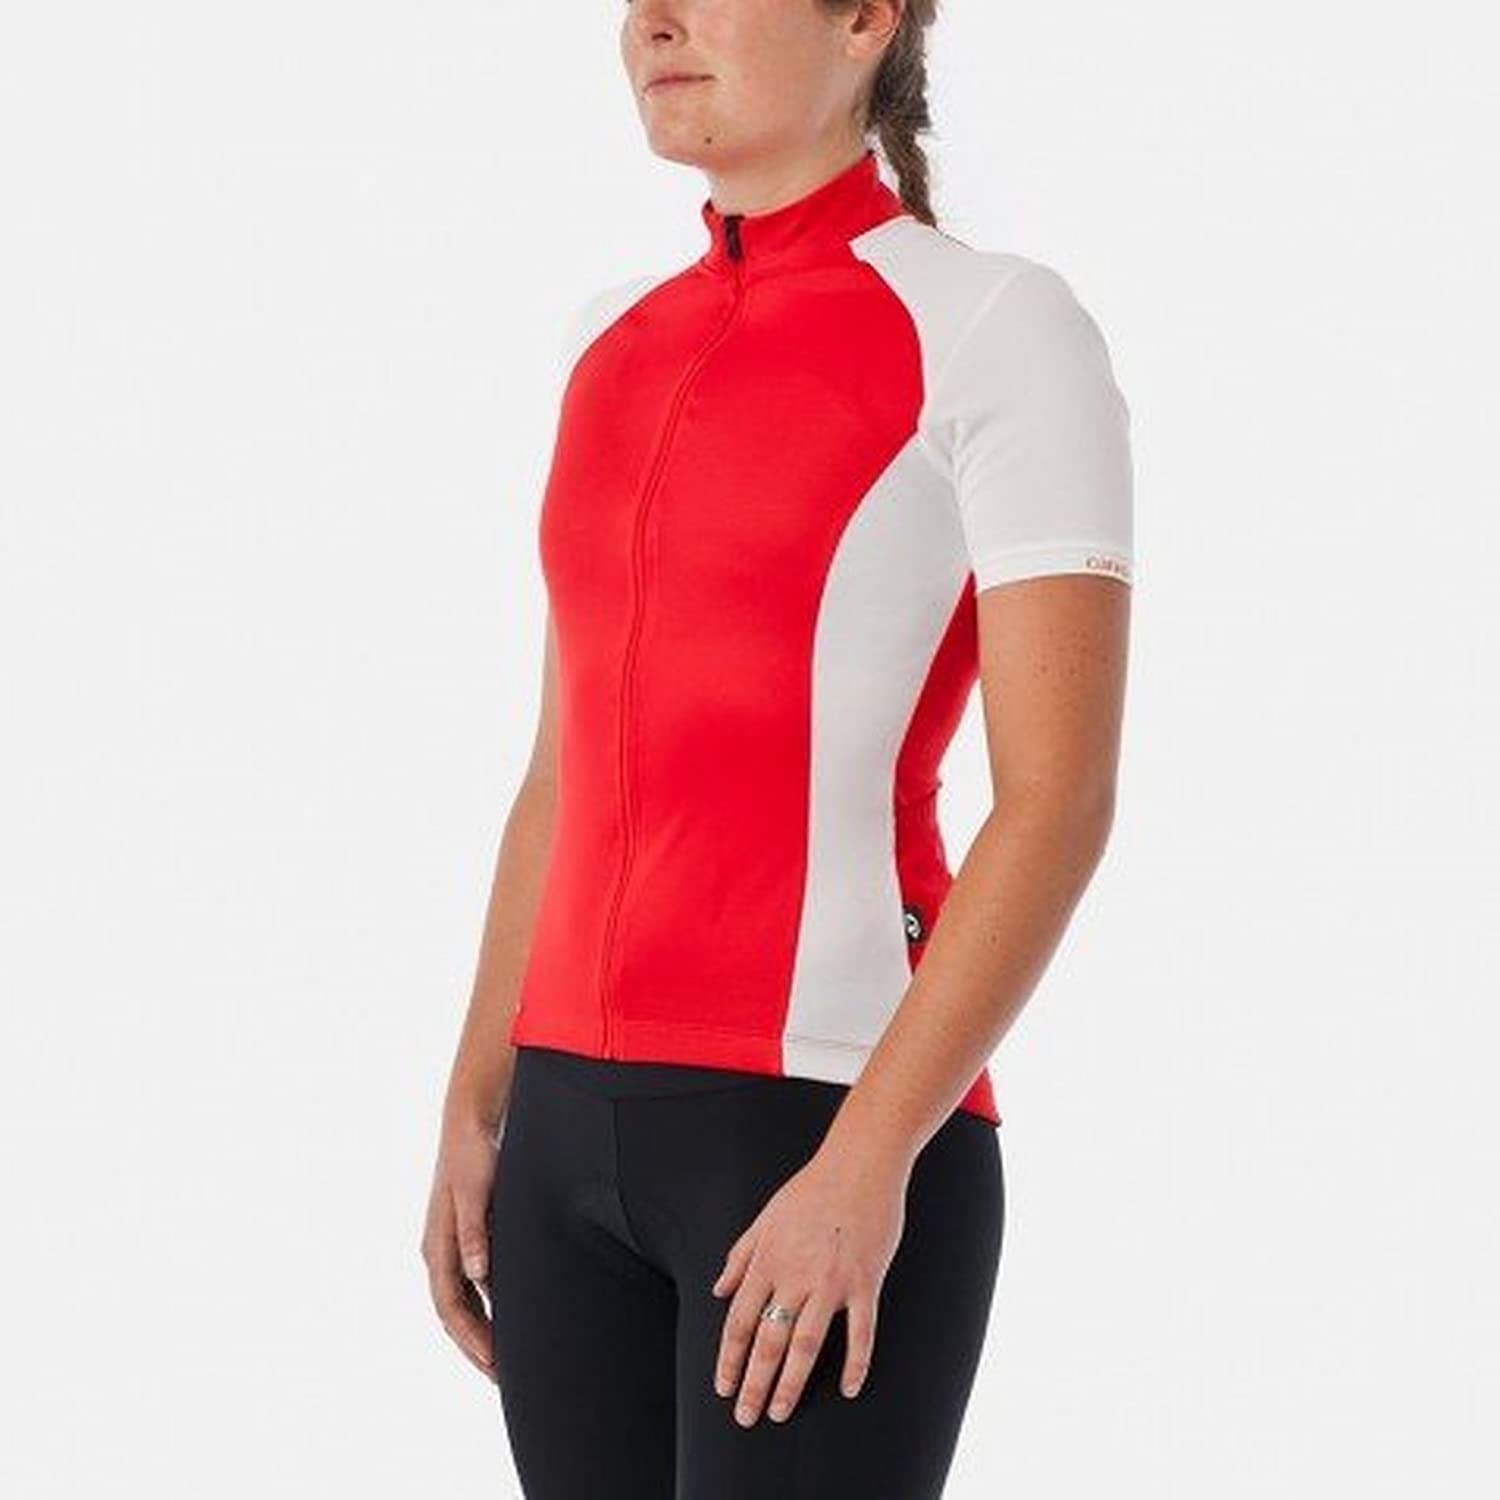 Giro Chrono Sport Short Sleeve Jersey Red White Size L 2016 Short Sleeve